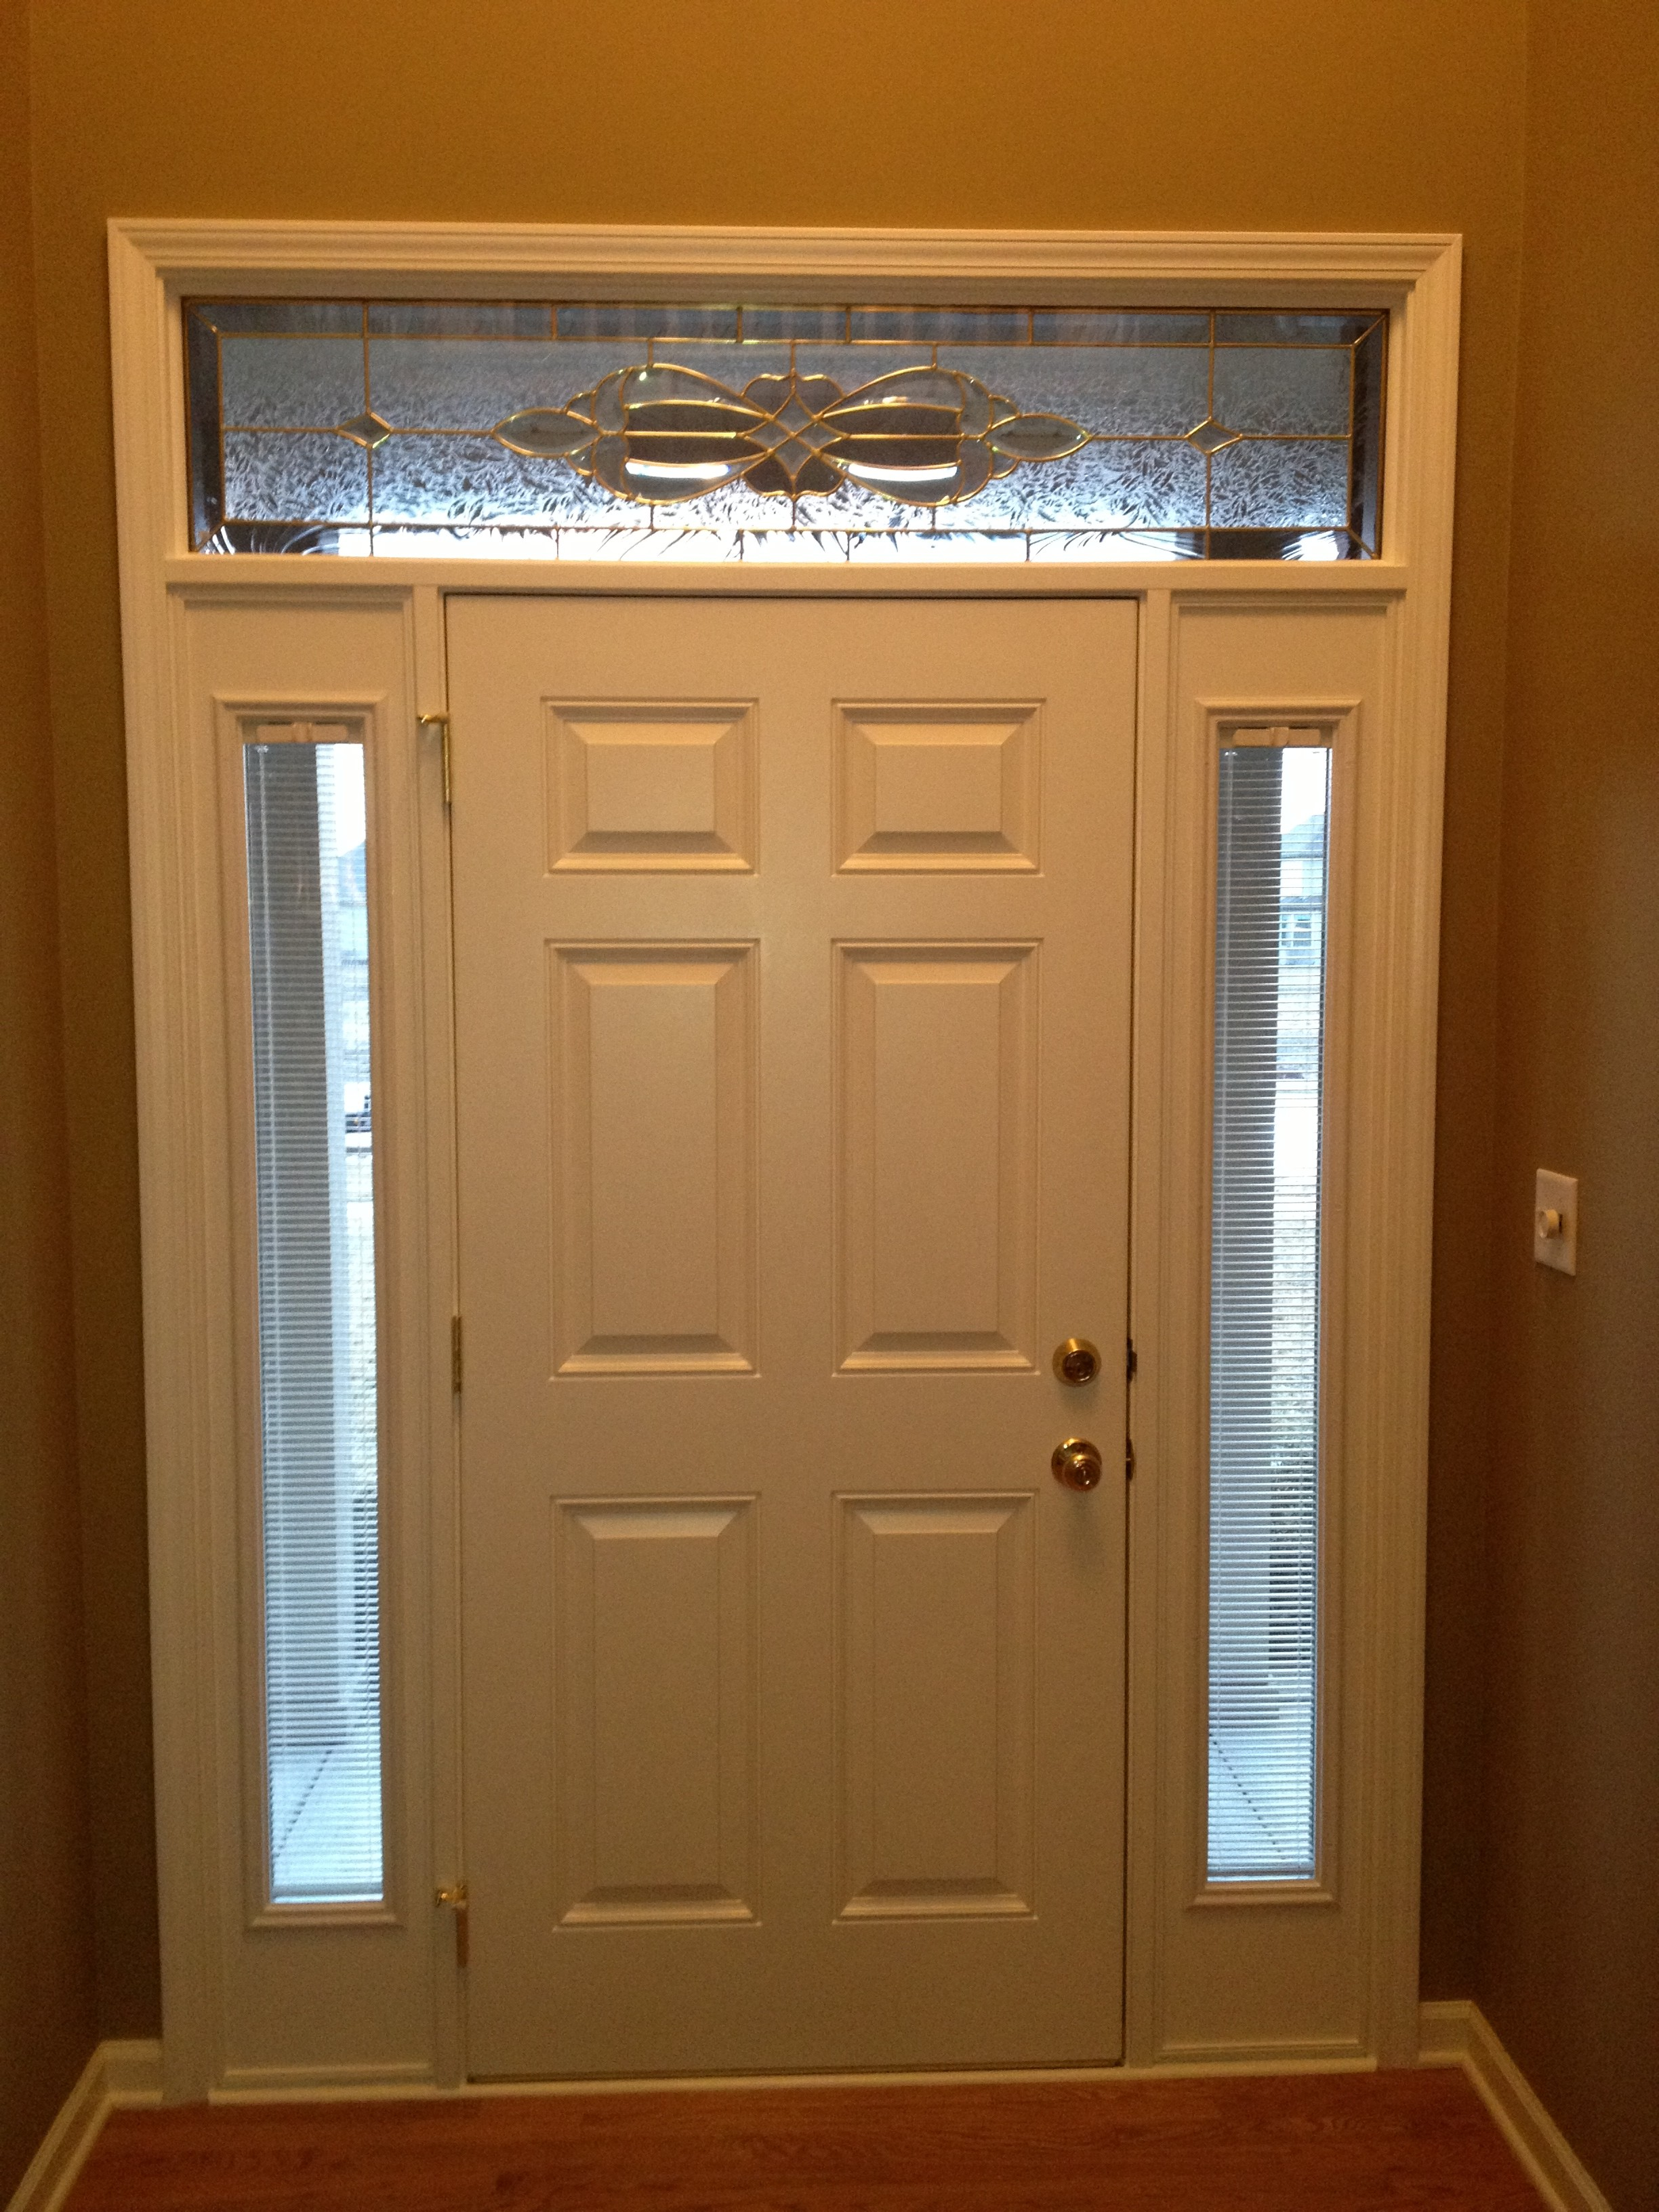 Advance home remodelers services montgomery illinois for Front door with window on top